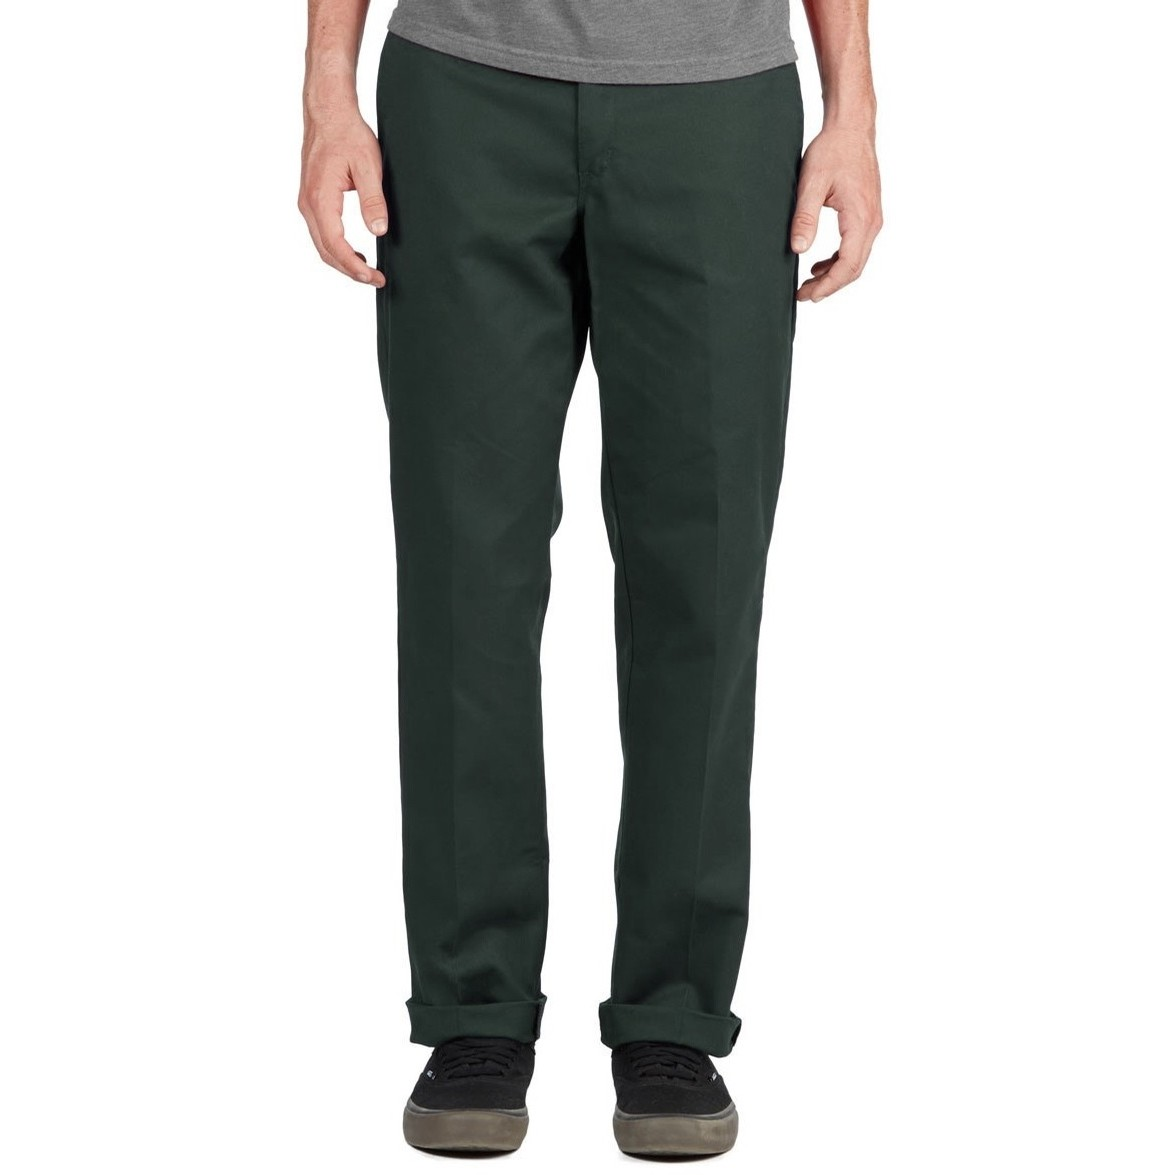 67 Slim Fit Industrial Work Pant (Olive Green)